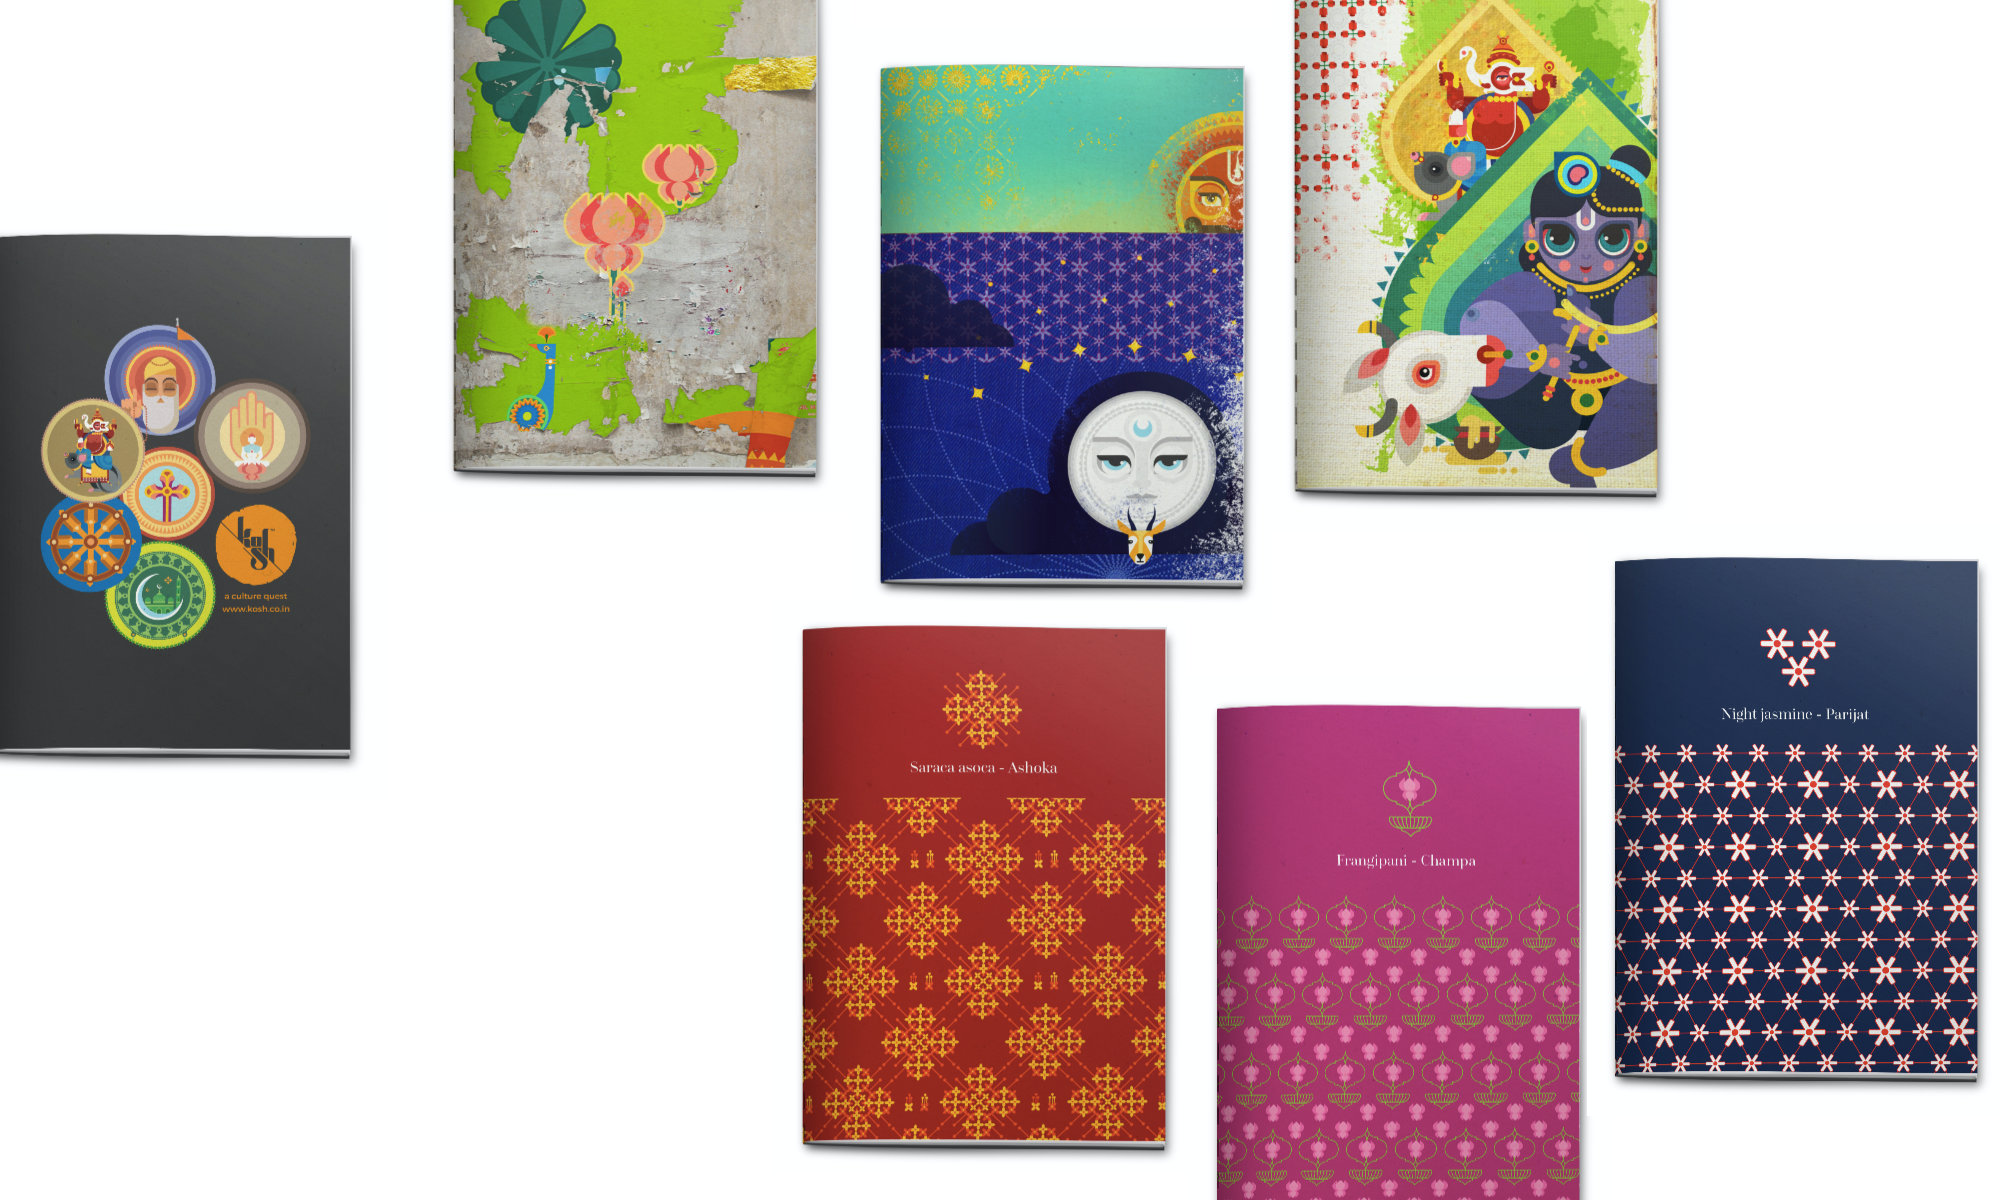 Flowers of India Journals